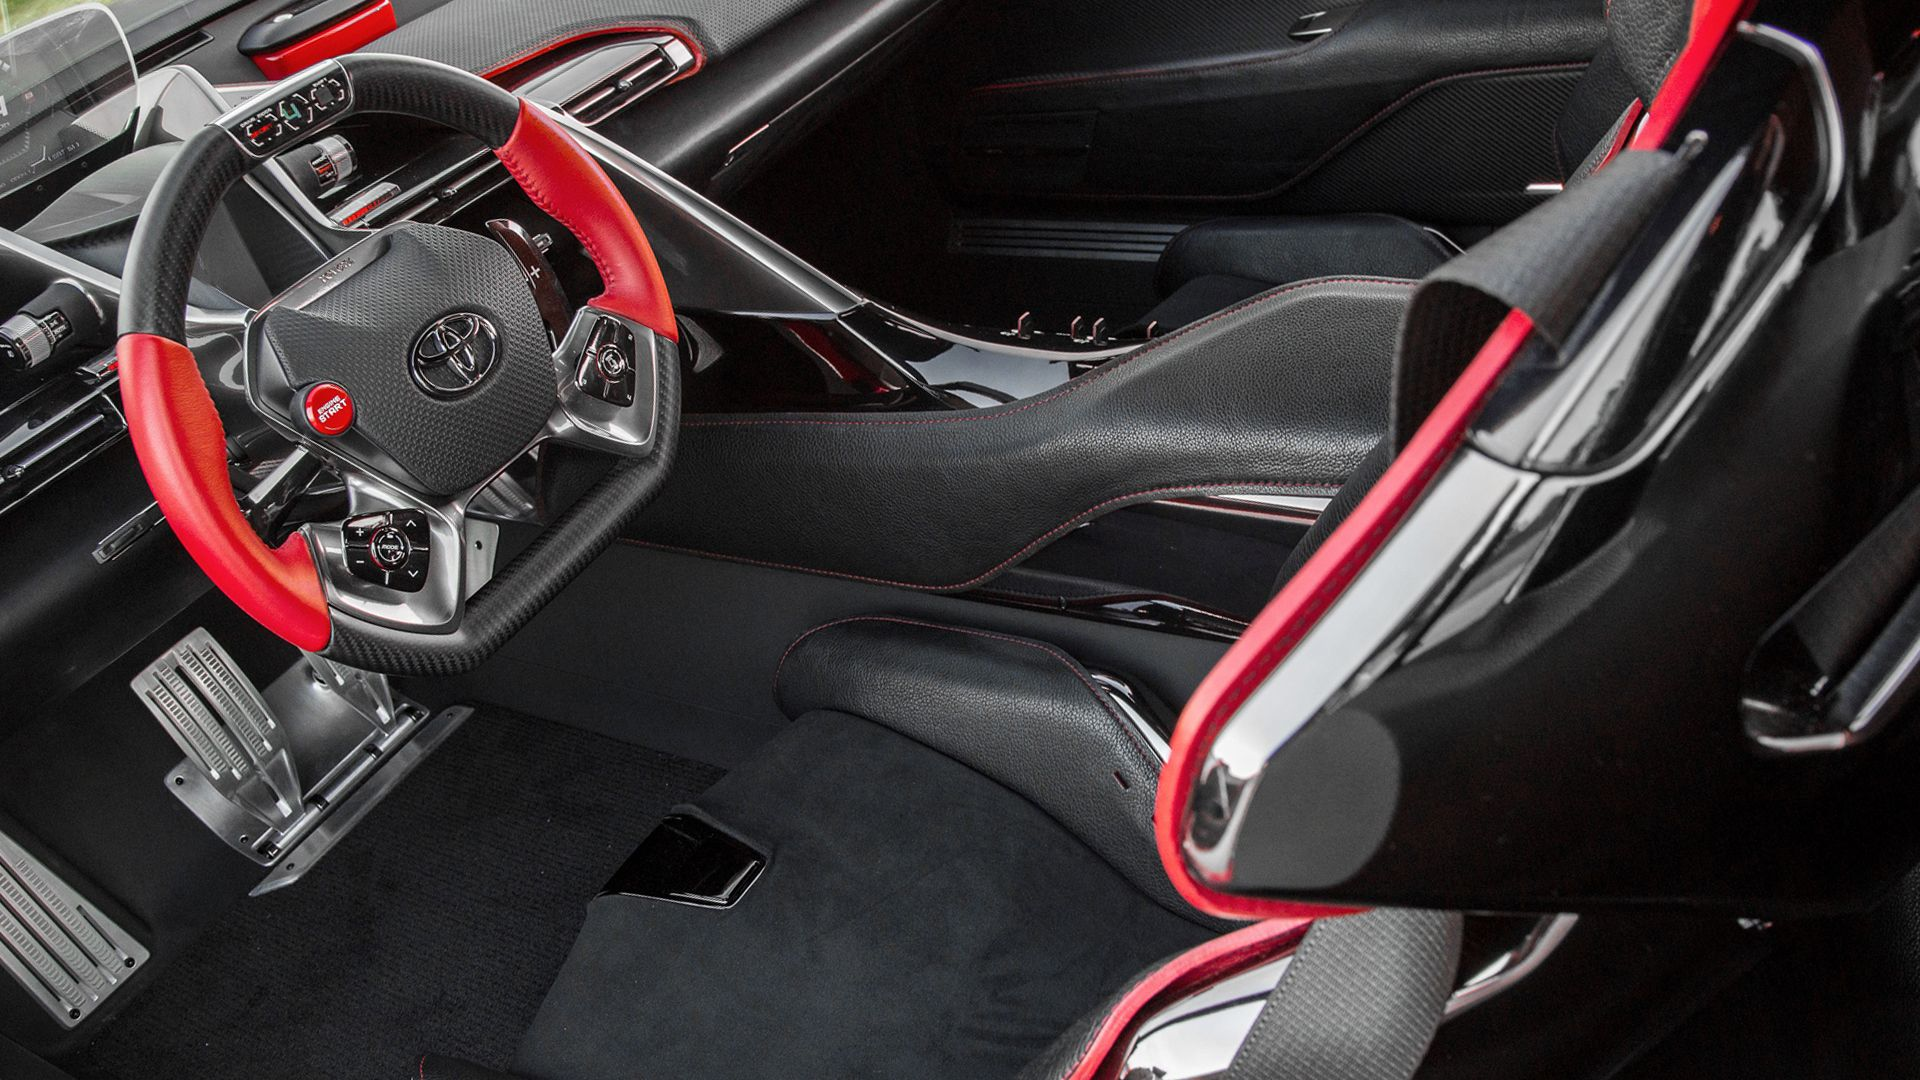 New 2019 Toyota FT 1 Interior Design